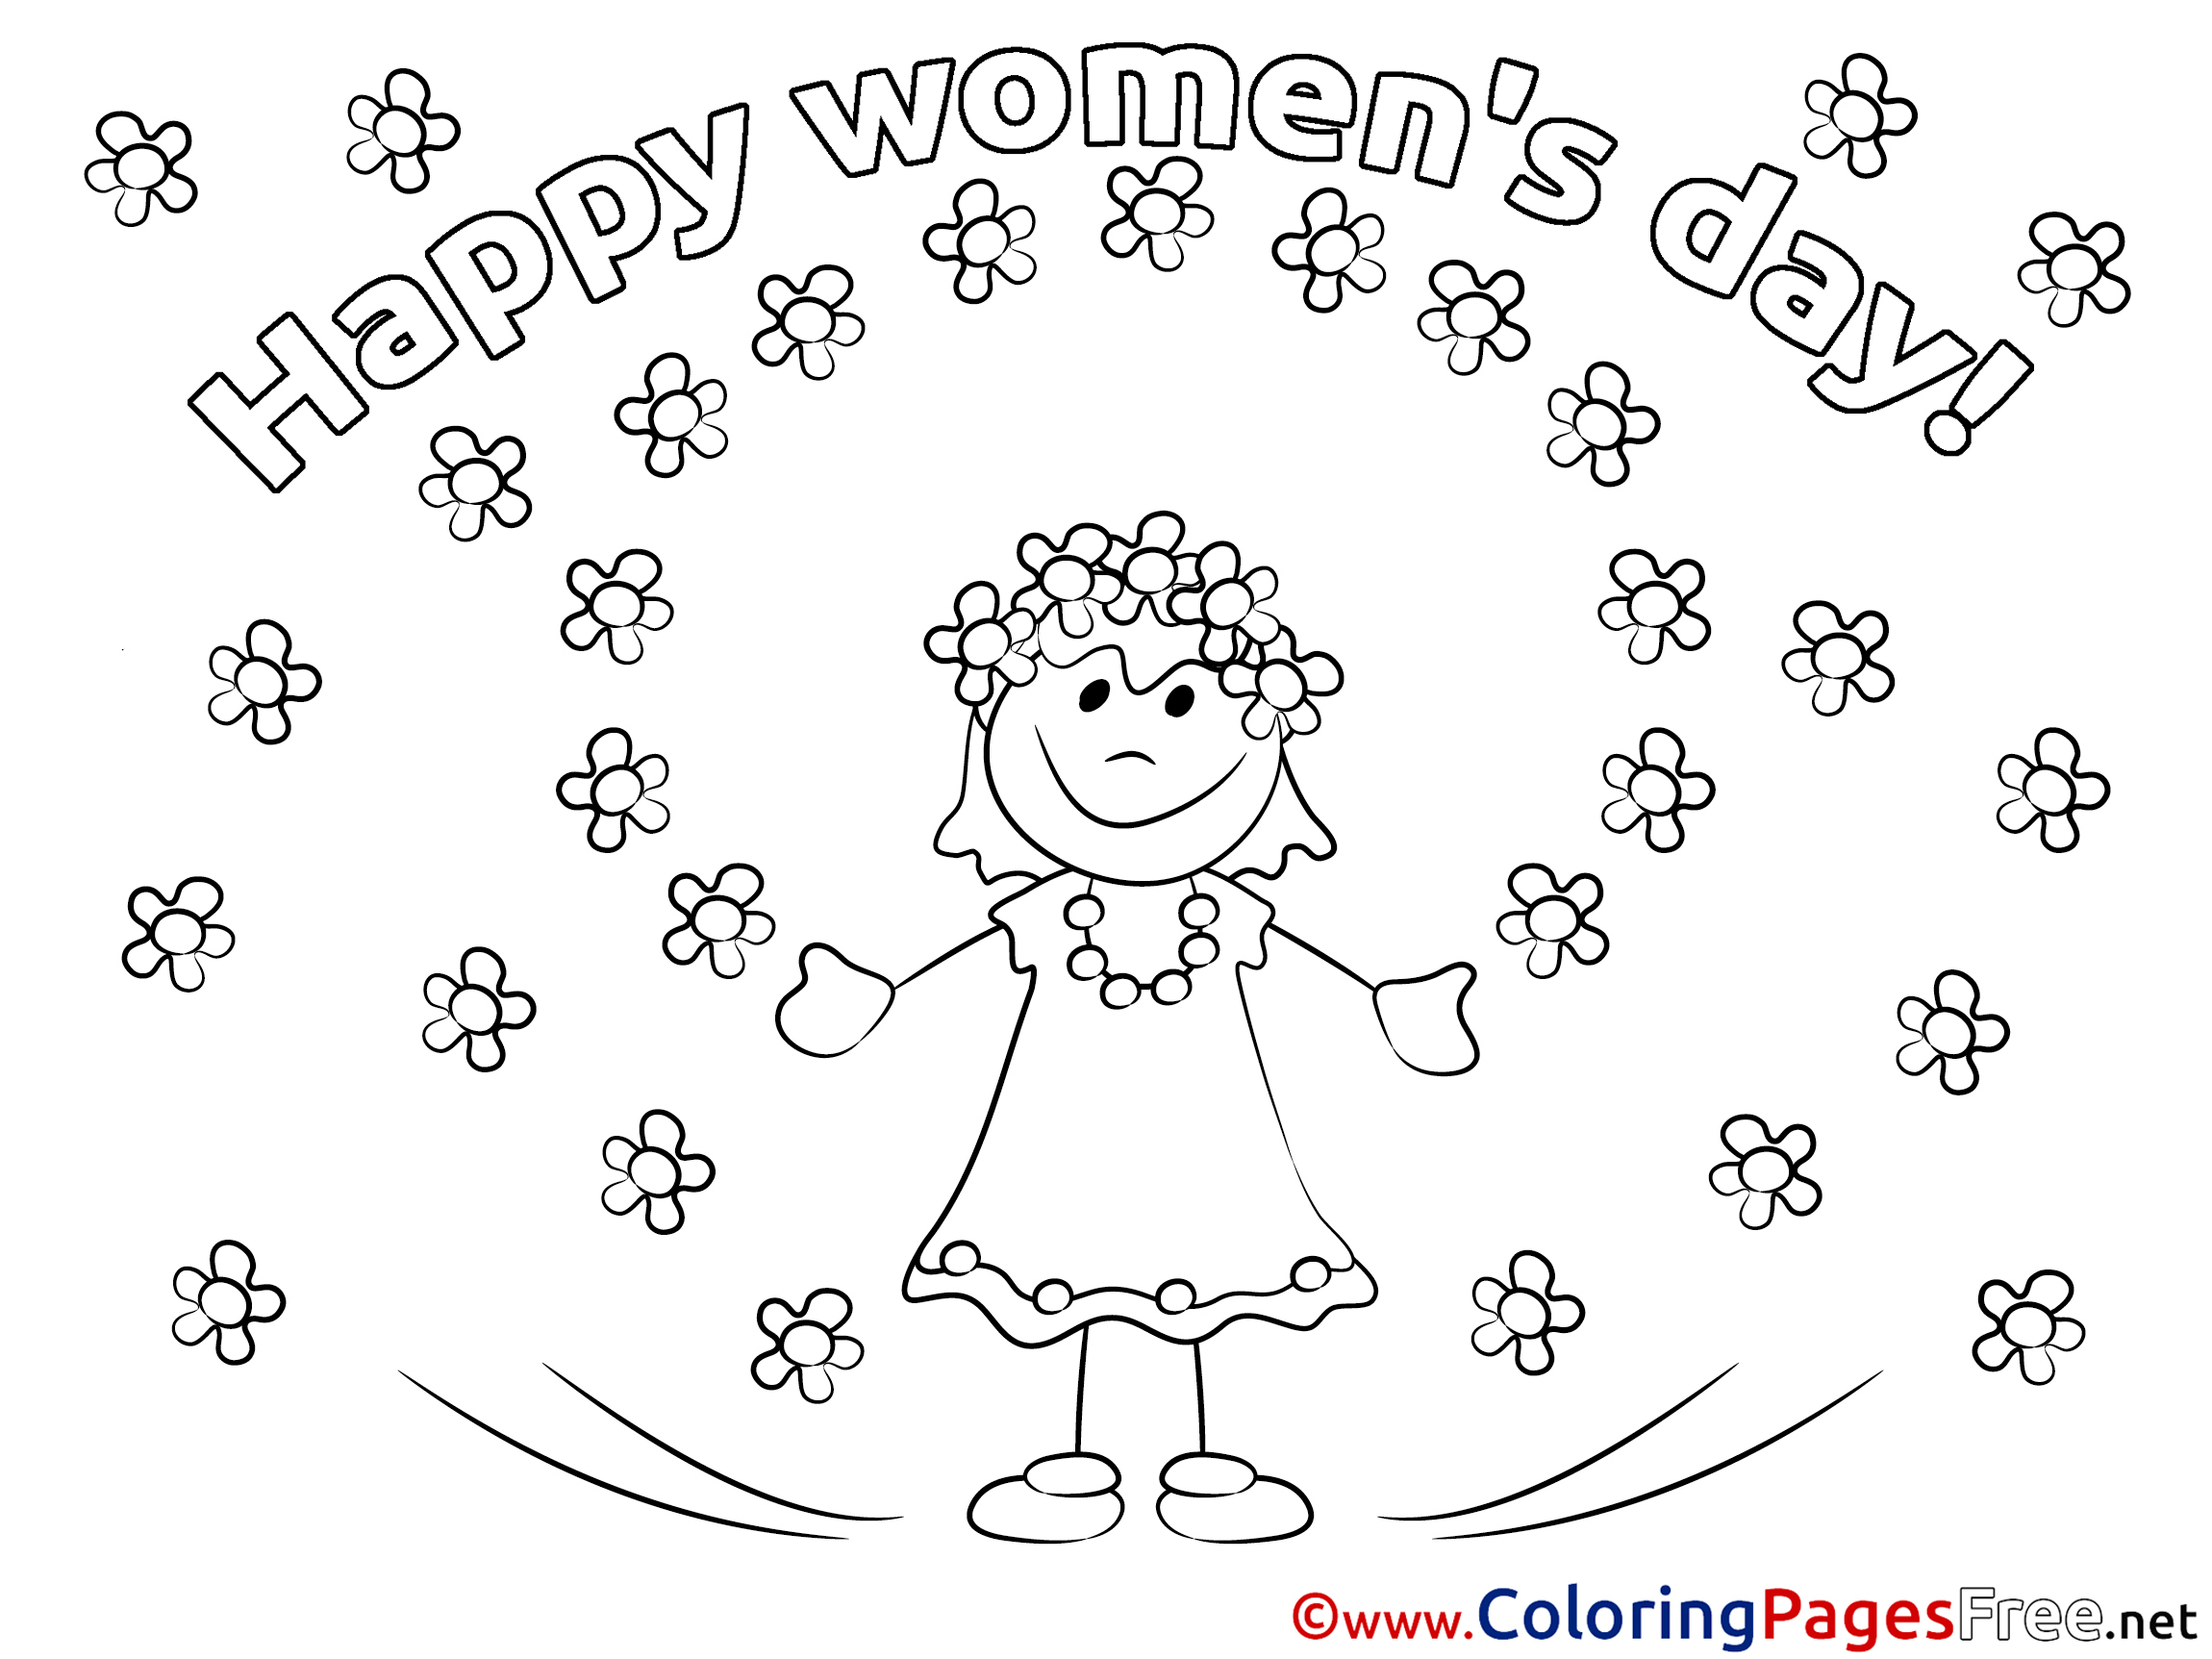 girl flowers coloring pages womens day for free - Coloring Pages For Women